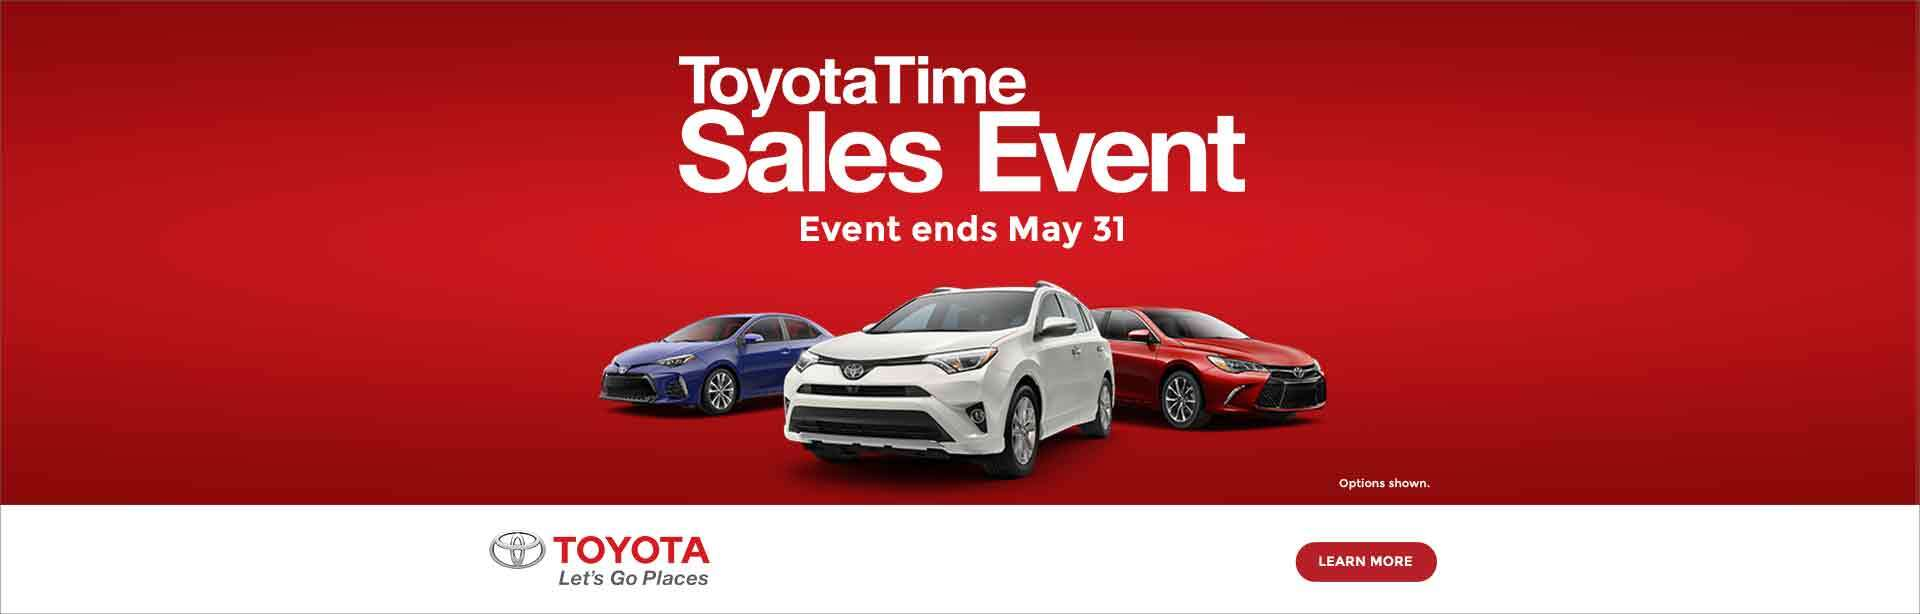 ToyotaTime Sales Event 2017